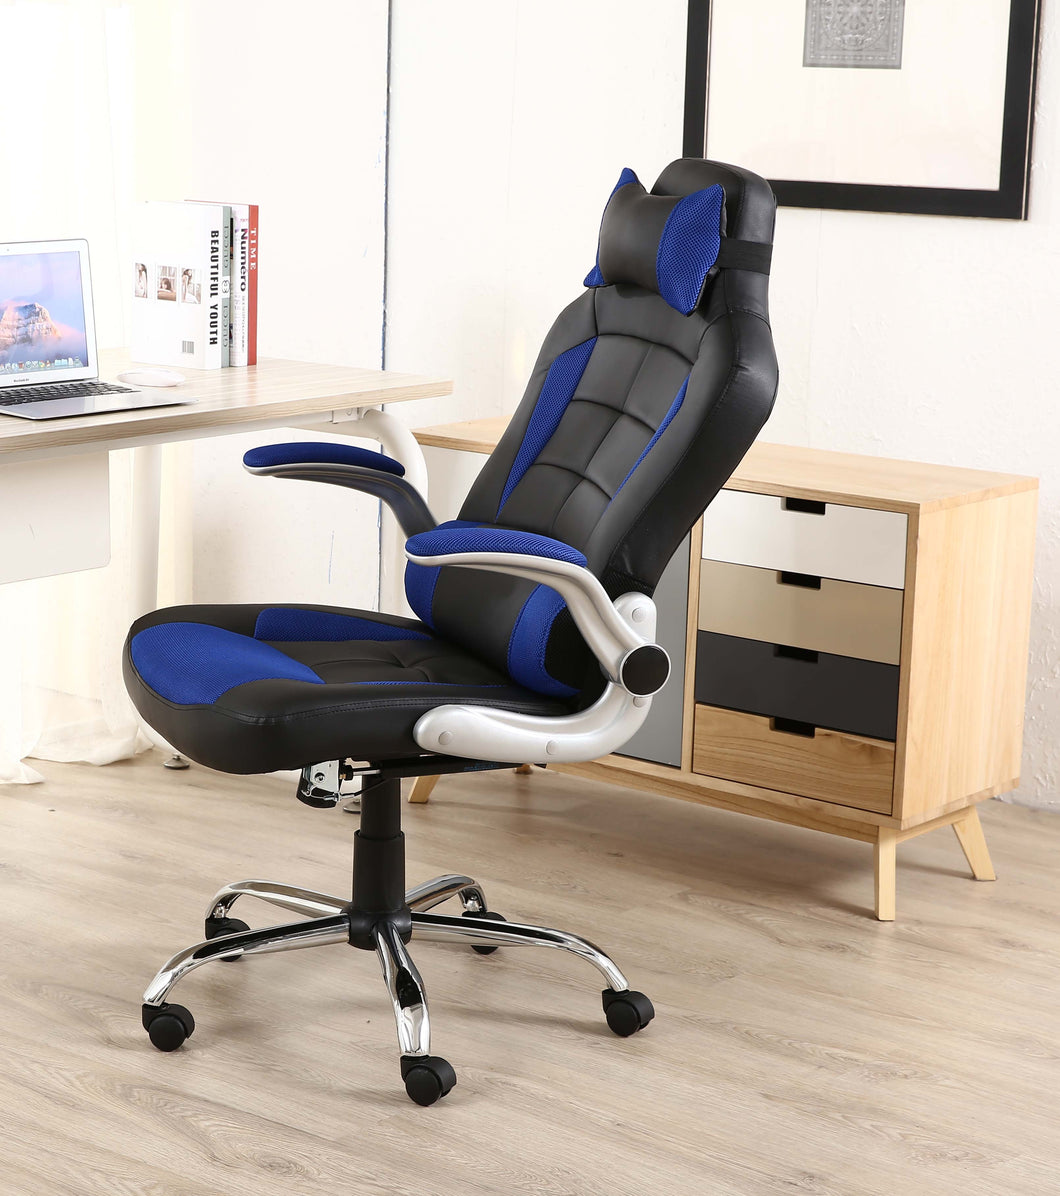 ... BTEXPERT Leather Office Gaming Chair Napping Tilt Pillow Headrest  Lumbar Support ...